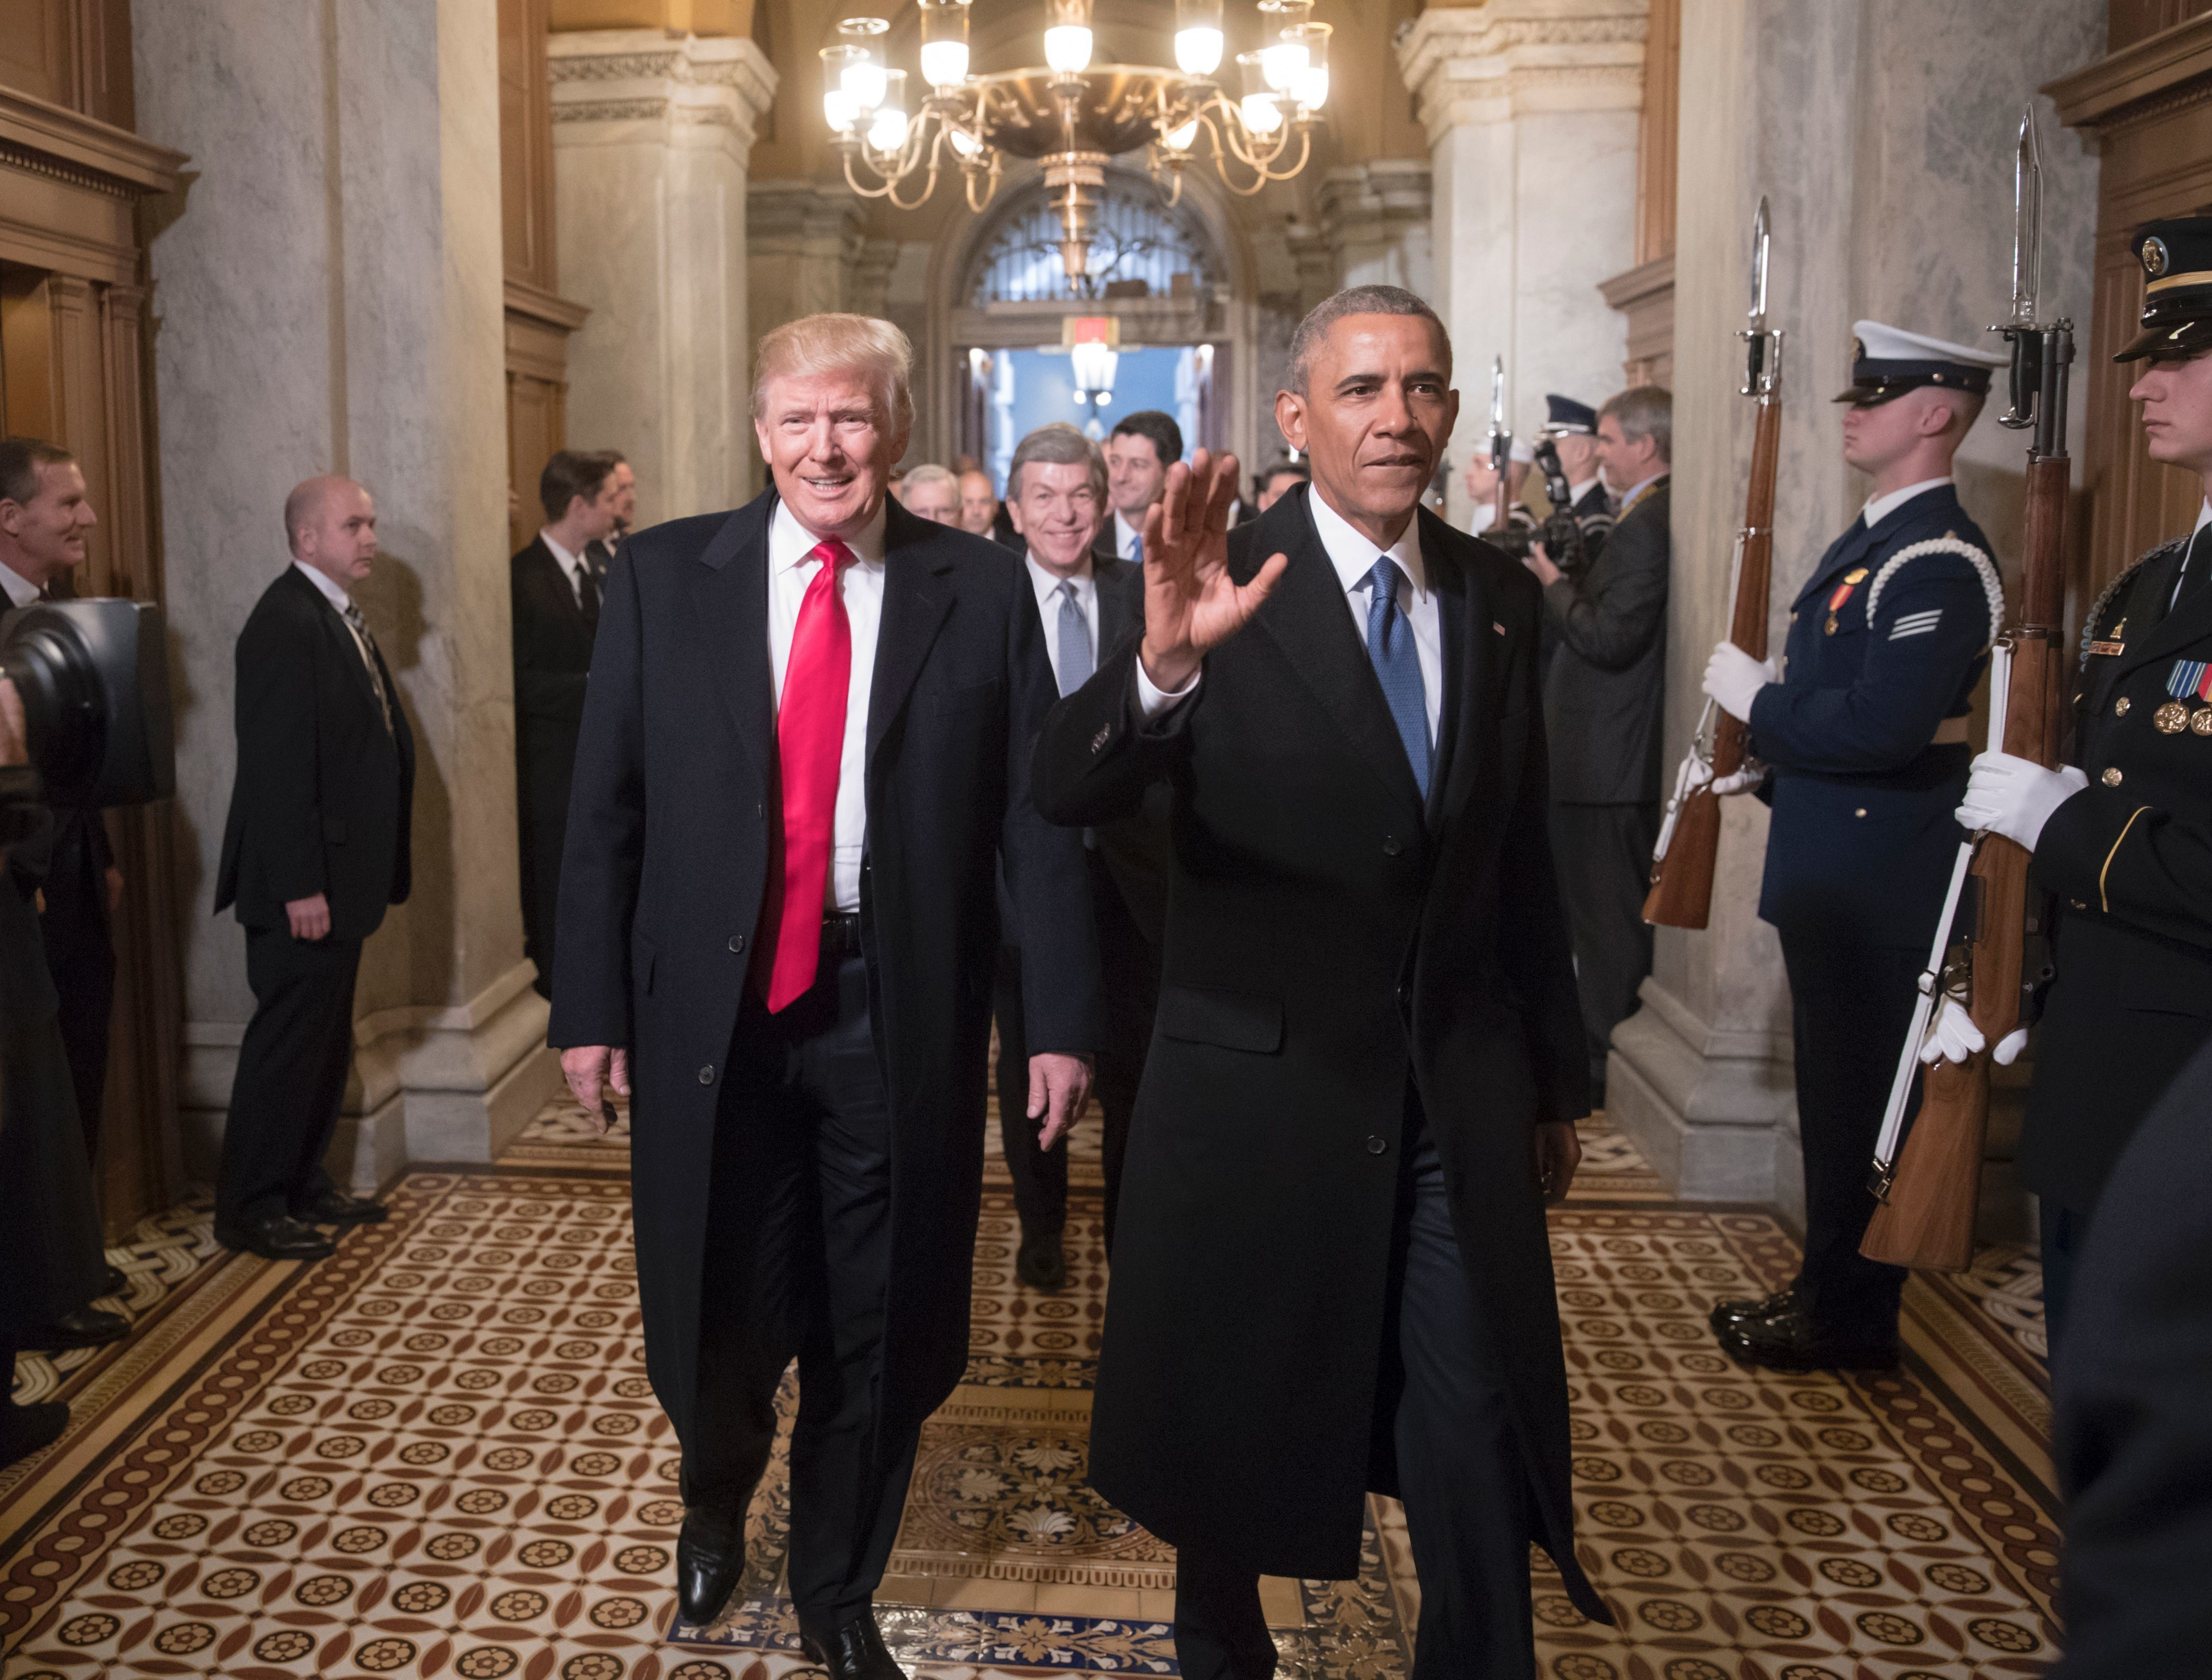 President Donald Trump and former President Barack Obama arrive for Trump's inauguration ceremony on Jan. 20, 2017. Trump kep